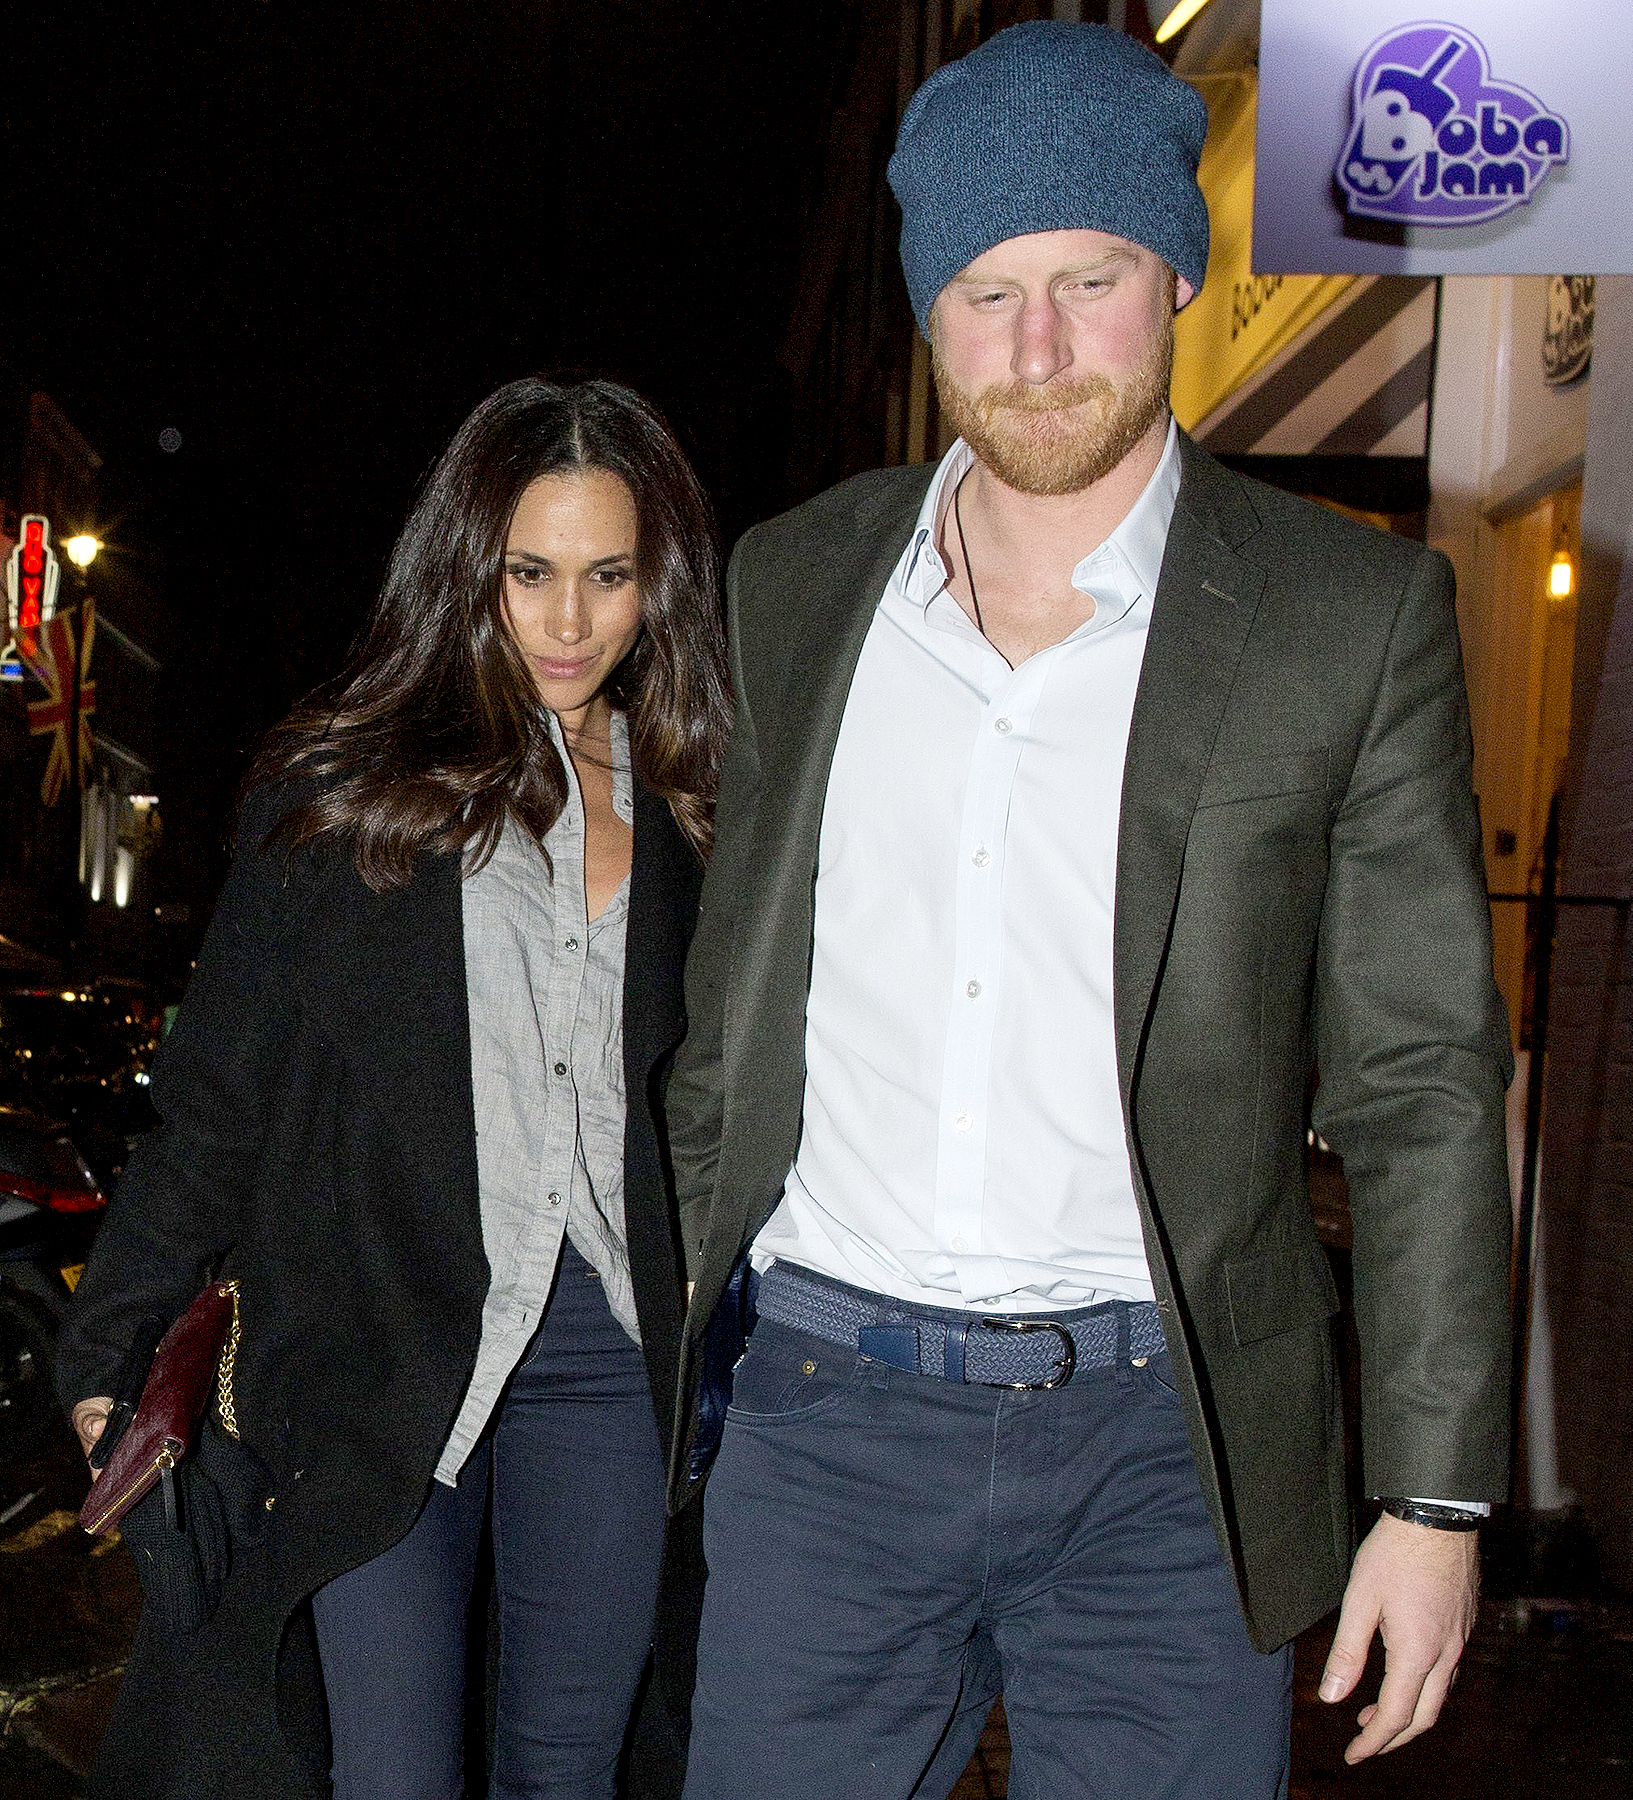 Prince Harry of Wales and Meghan Markle hold hands together on a date night while out in London, England on February 3, 2017.